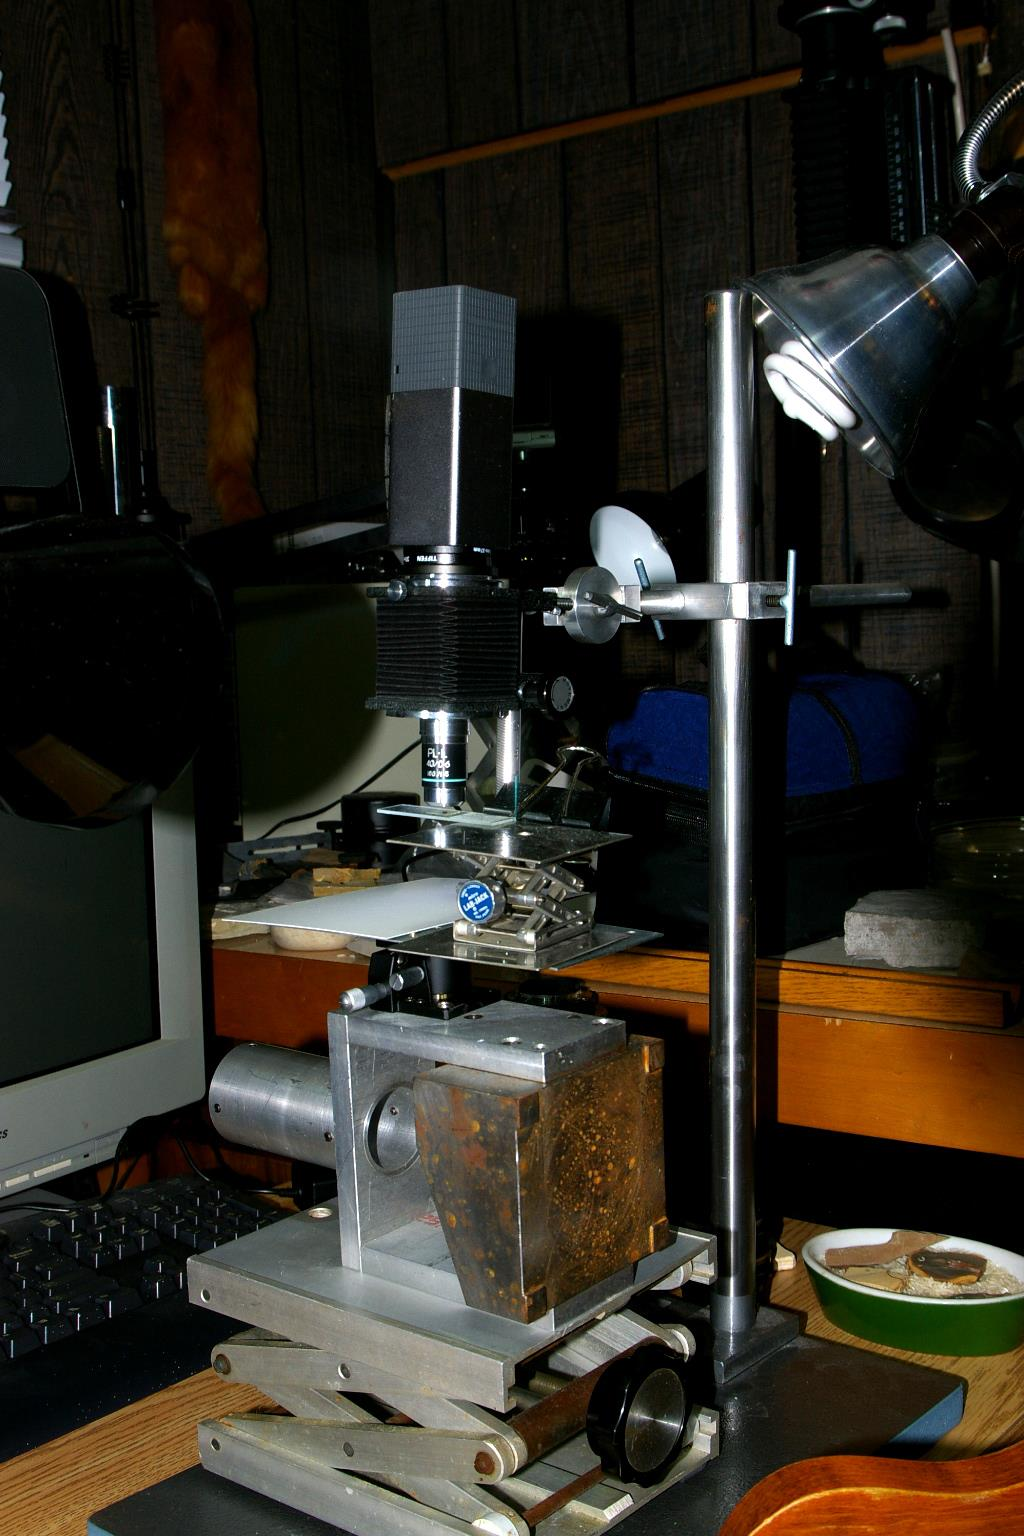 Prototype Rev2 LightField Microscope with Lytro Image Engine with 40X Microscope Objective (photo: pleecan)